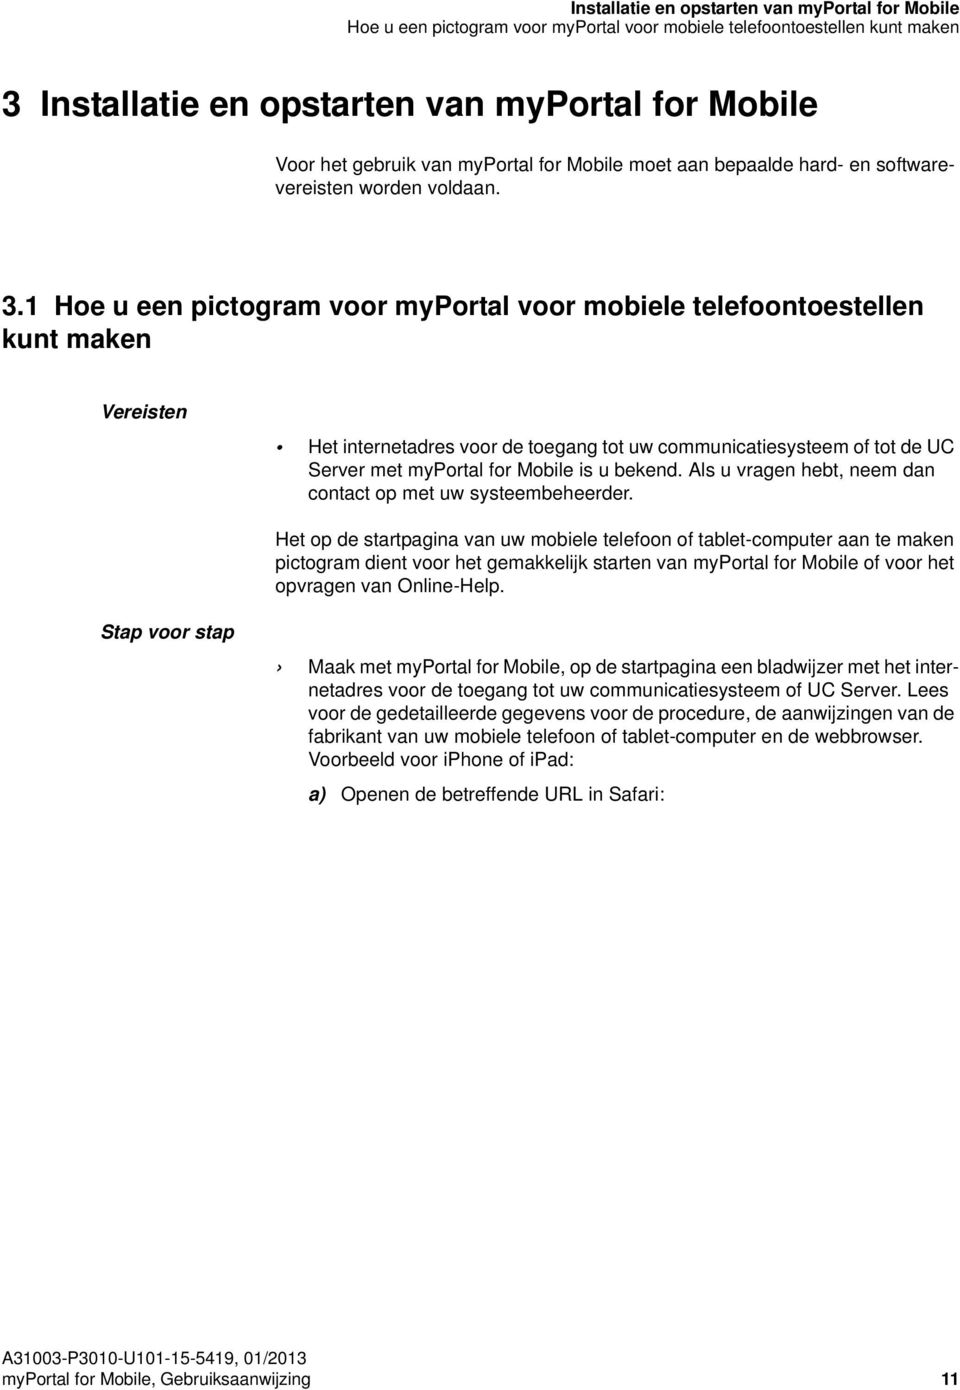 1 Hoe u een pictogram voor myportal voor mobiele telefoontoestellen kunt maken Vereisten Het internetadres voor de toegang tot uw communicatiesysteem of tot de UC Server met myportal for Mobile is u